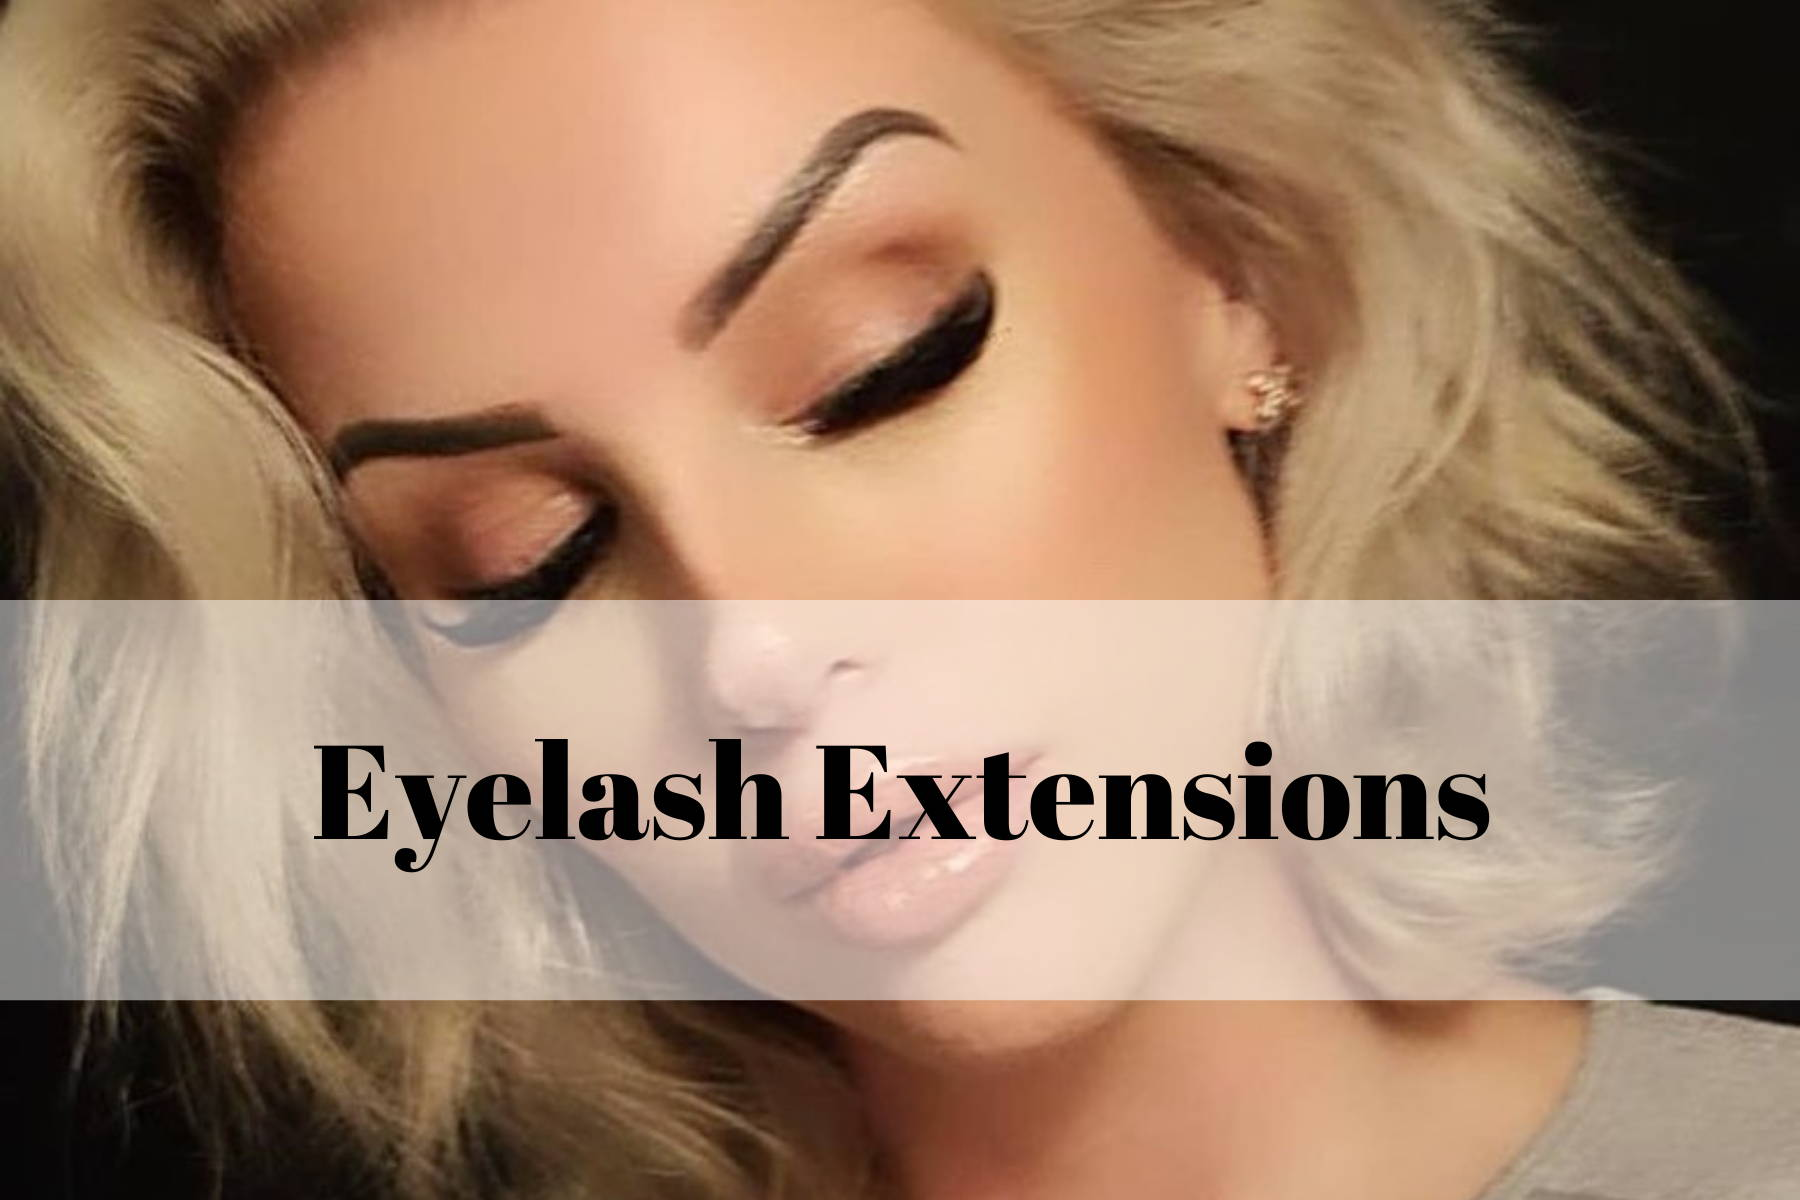 eyelash extension services - eyelash extensions near me - eyelash extensions chermside - Russian volume - volume lashes